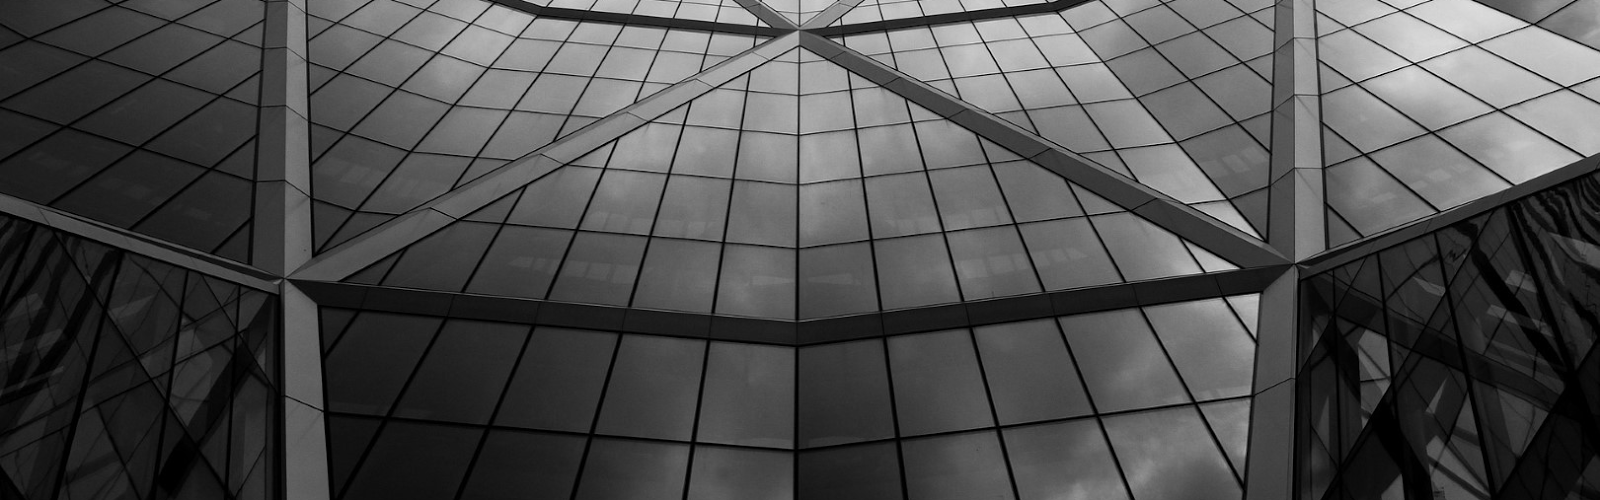 black and white of a glass building